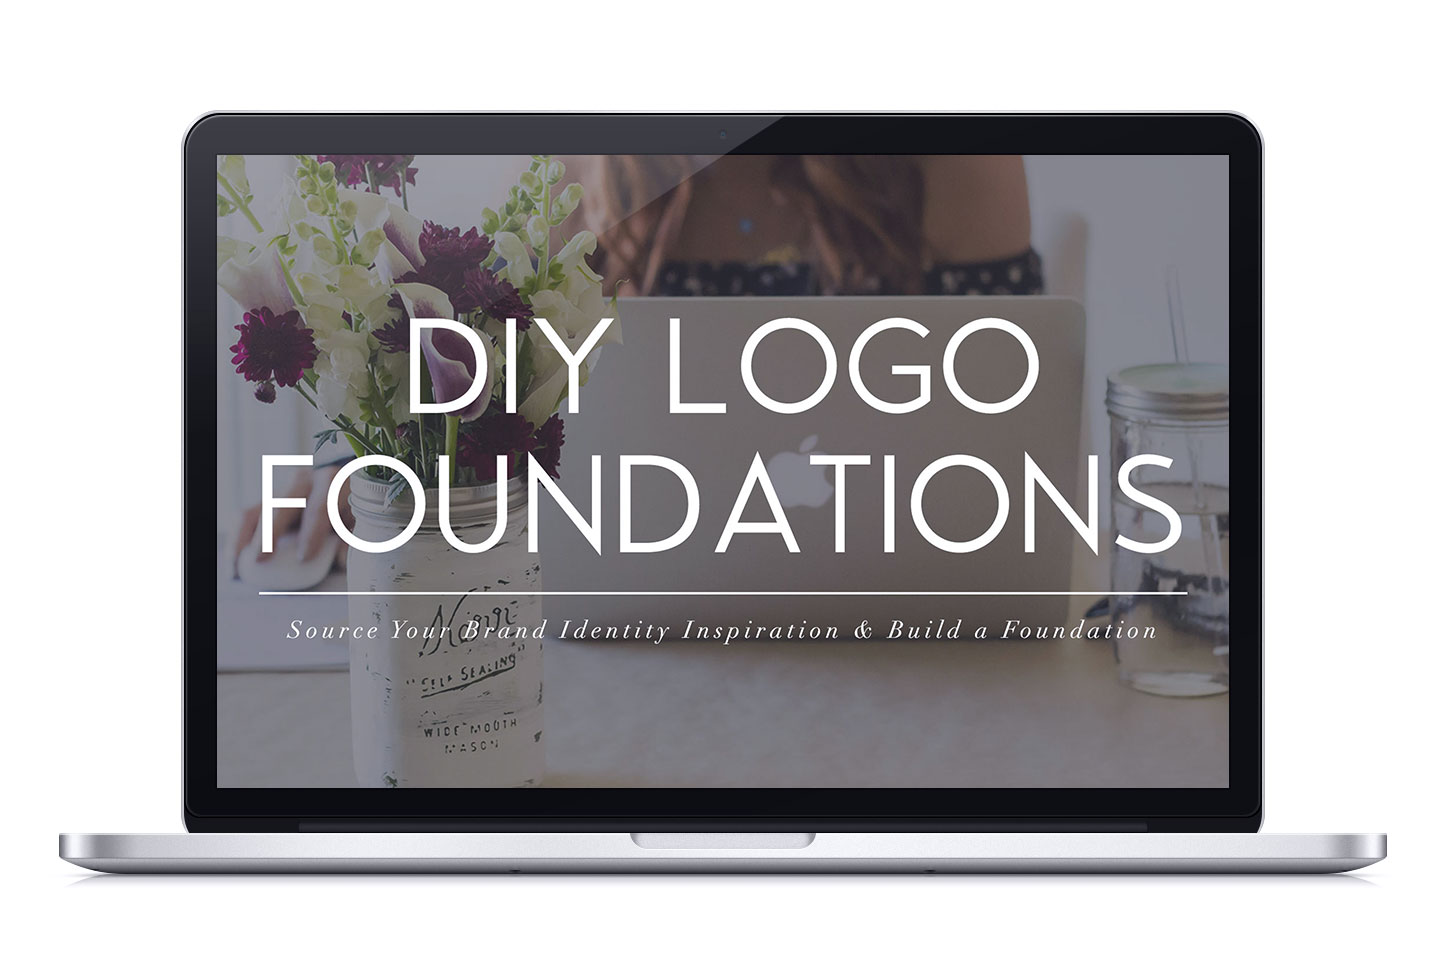 diy-logo-foundations-computer